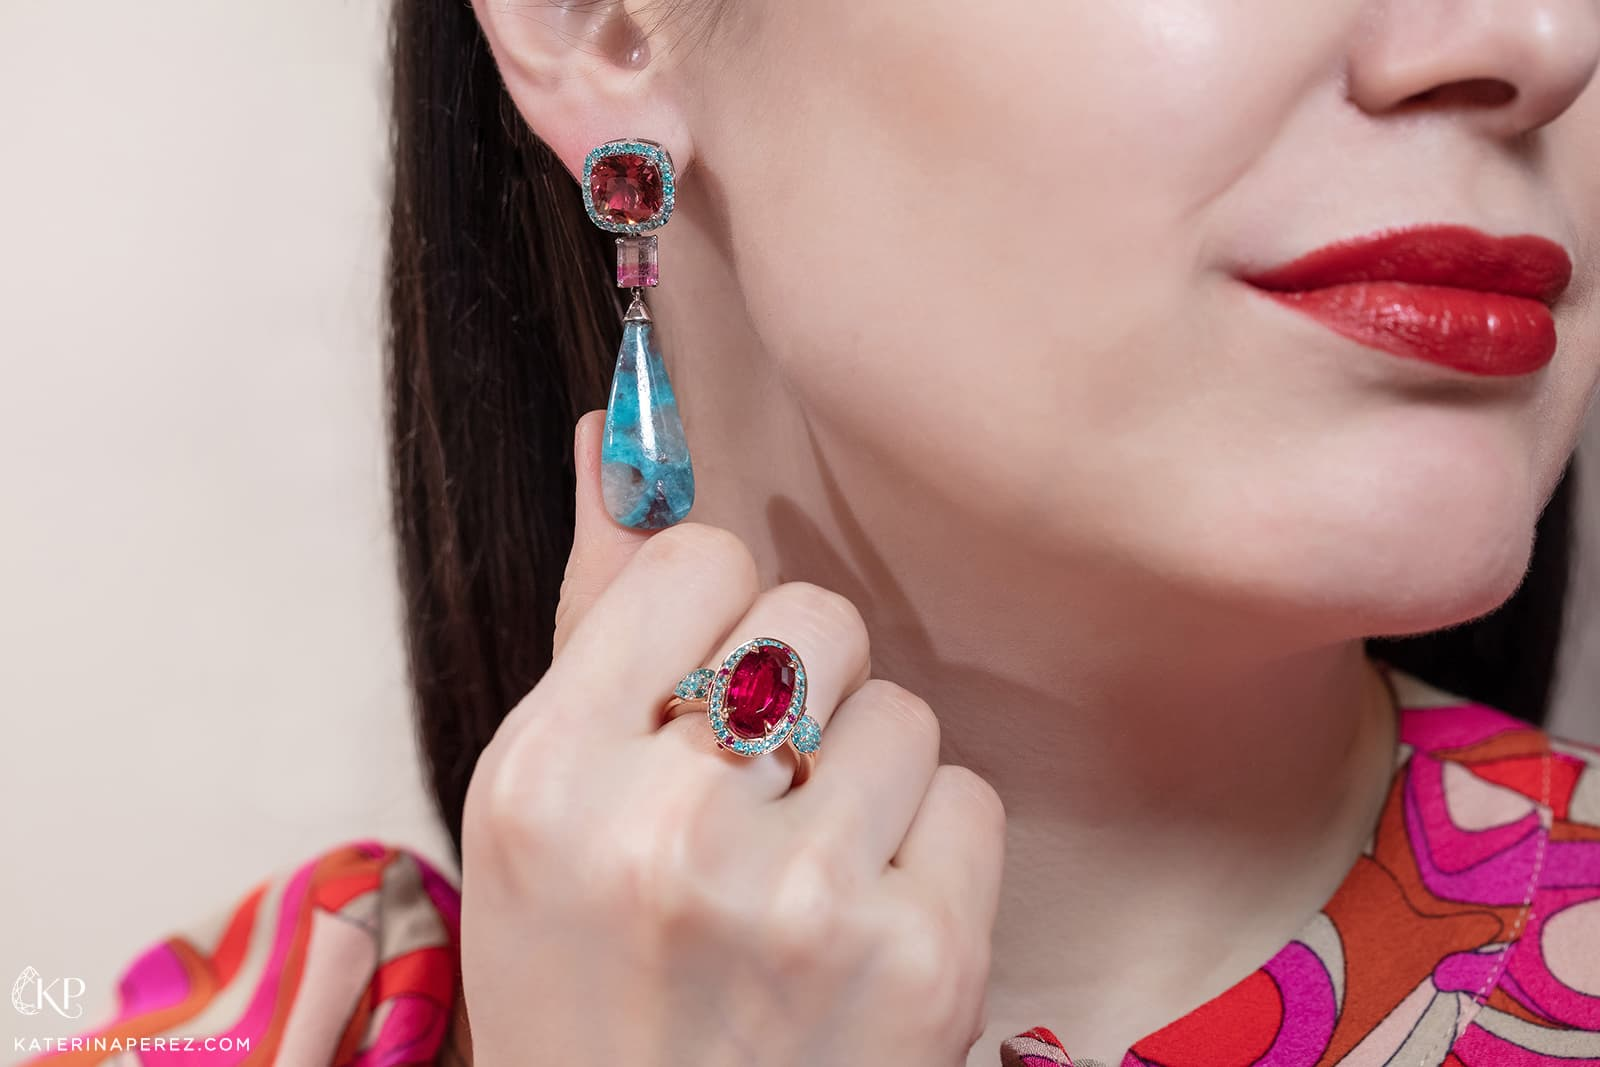 Graziela Gems earrings with 24.30ct Paraiba tourmaline, watermelon tourmaline and rubellite, and ring with 5.60ct rubellite and 0.65ct Paraiba tourmaline in yellow gold